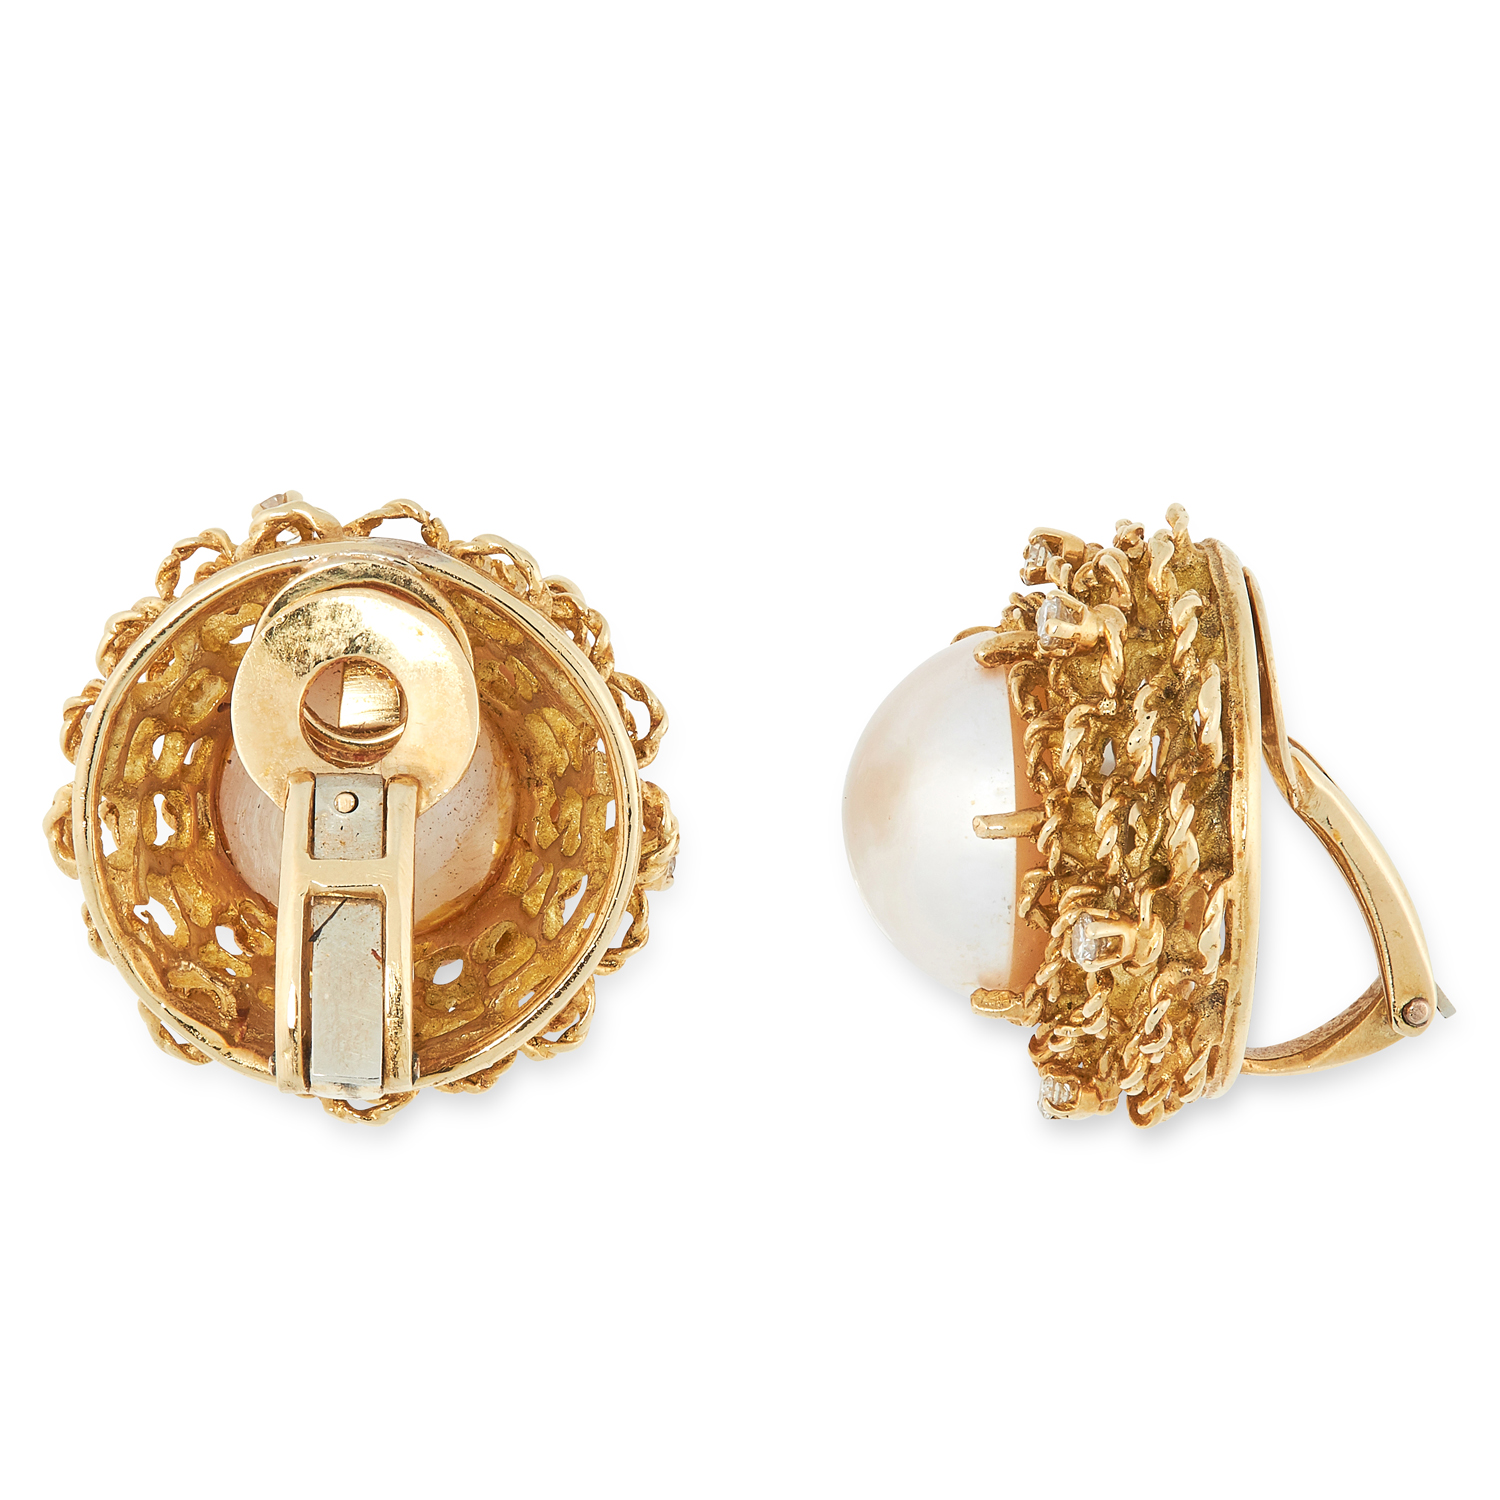 A PAIR OF VINTAGE PEARL AND DIAMOND EARRINGS, 1960s in high carat yellow gold, each set with a - Image 2 of 2